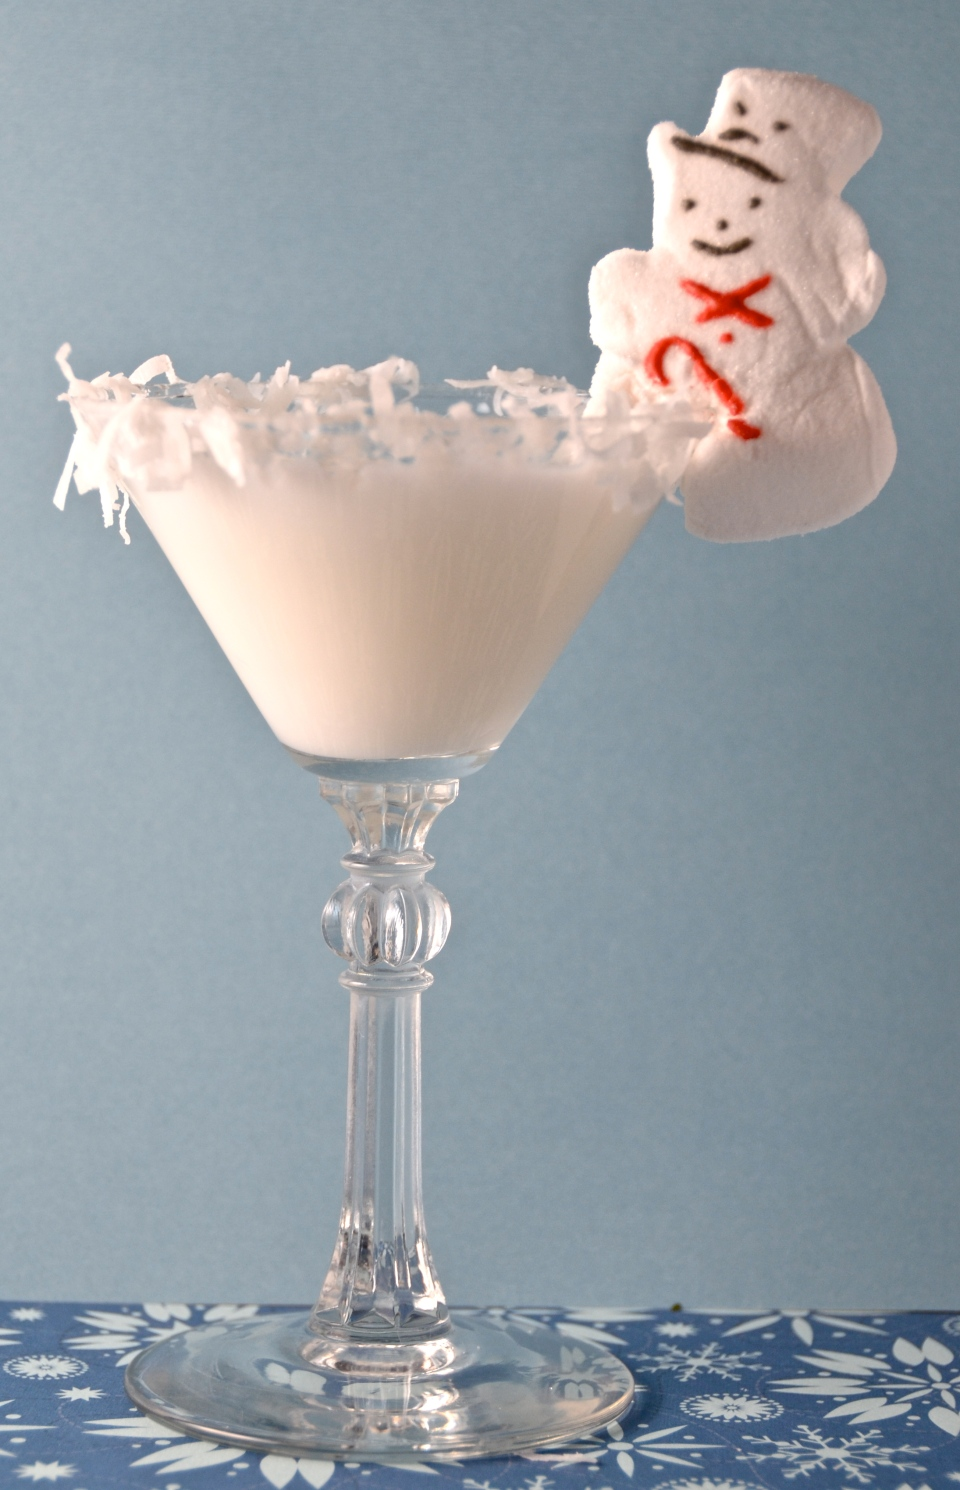 Snowy White Chocolate Cocktail